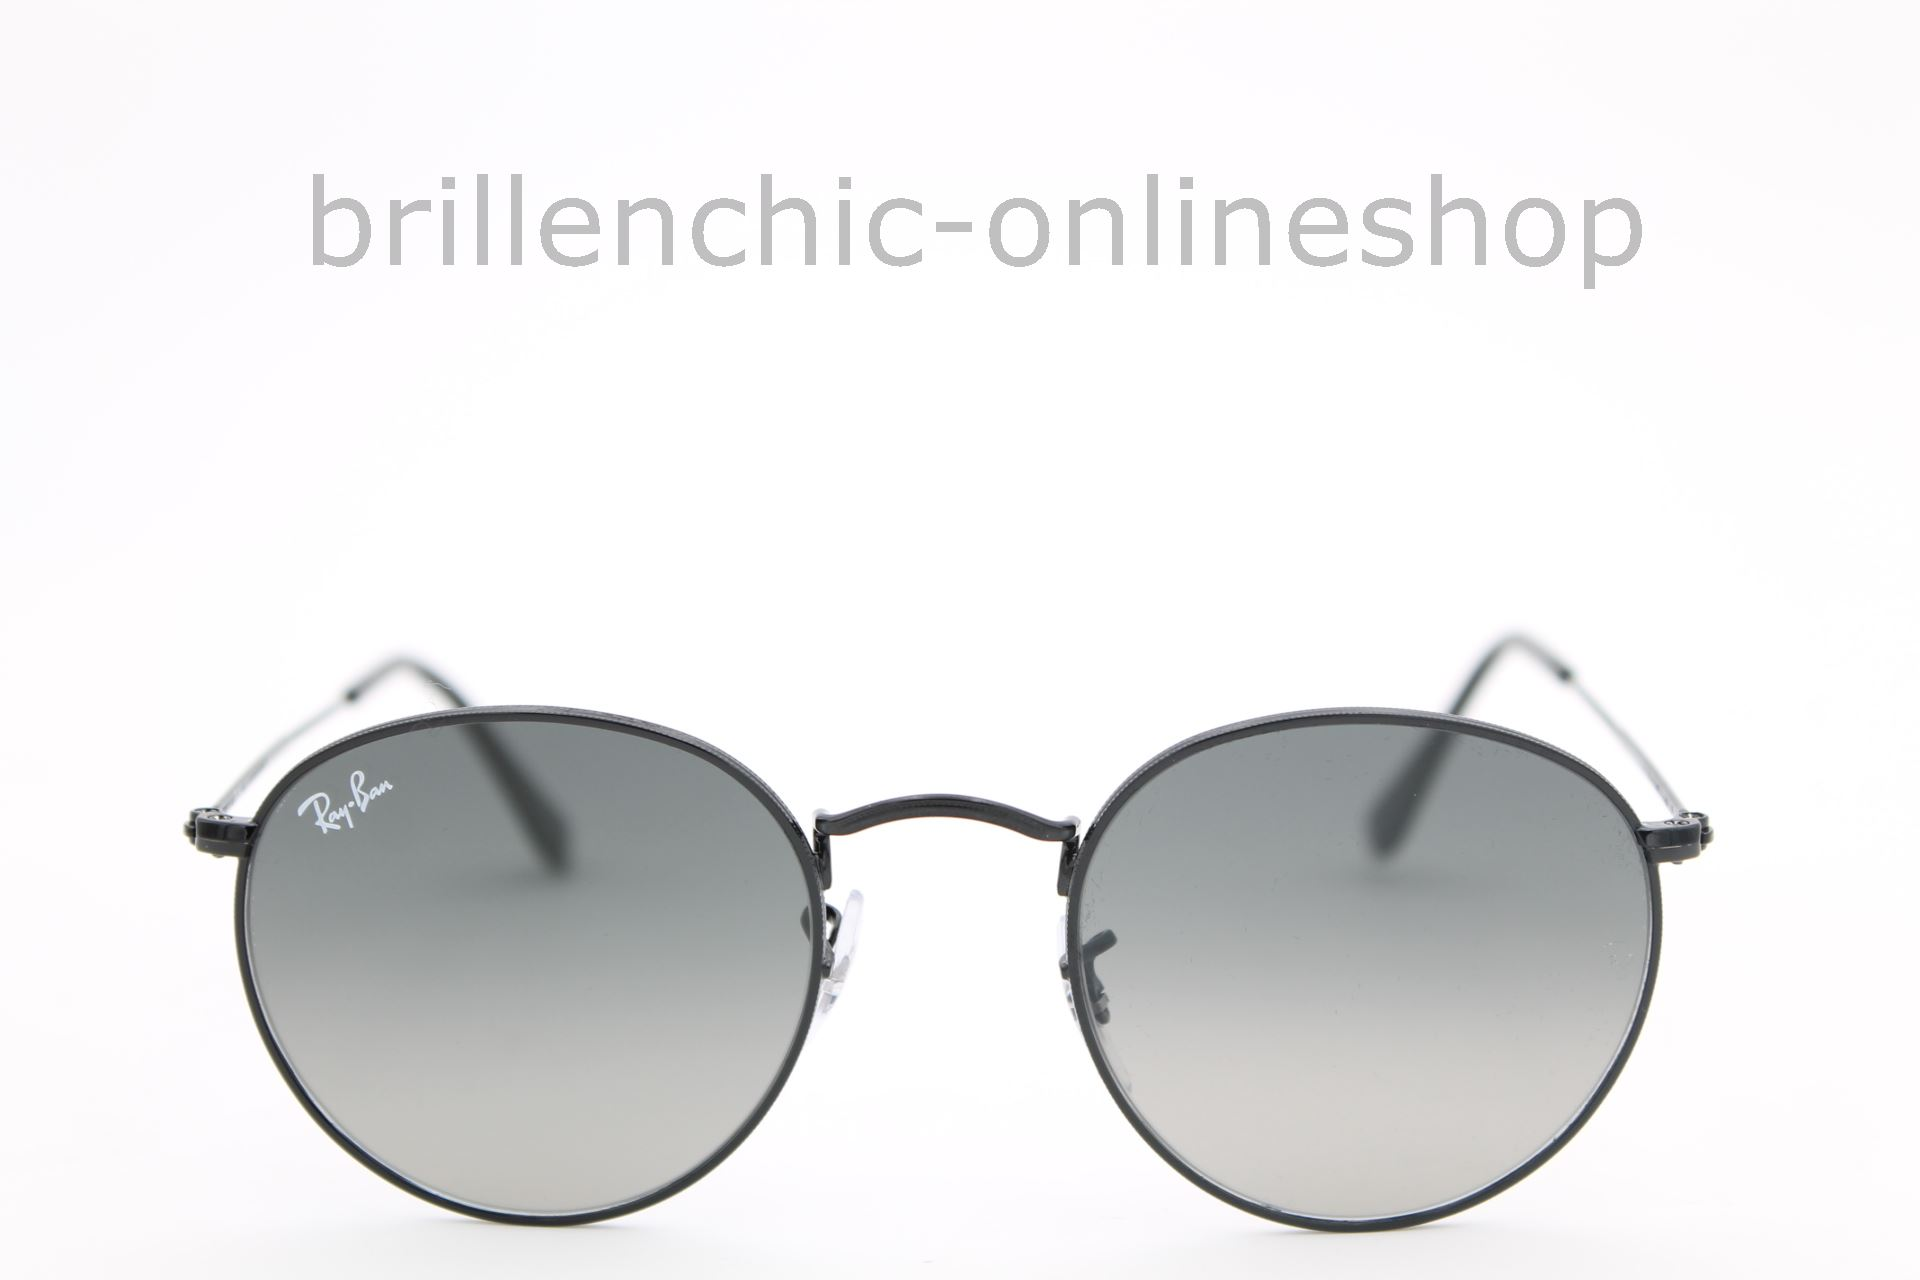 b6df1062ed Brillenchic-onlineshop in Berlin - Ray Ban ROUND METAL RB 3447N 3447 ...